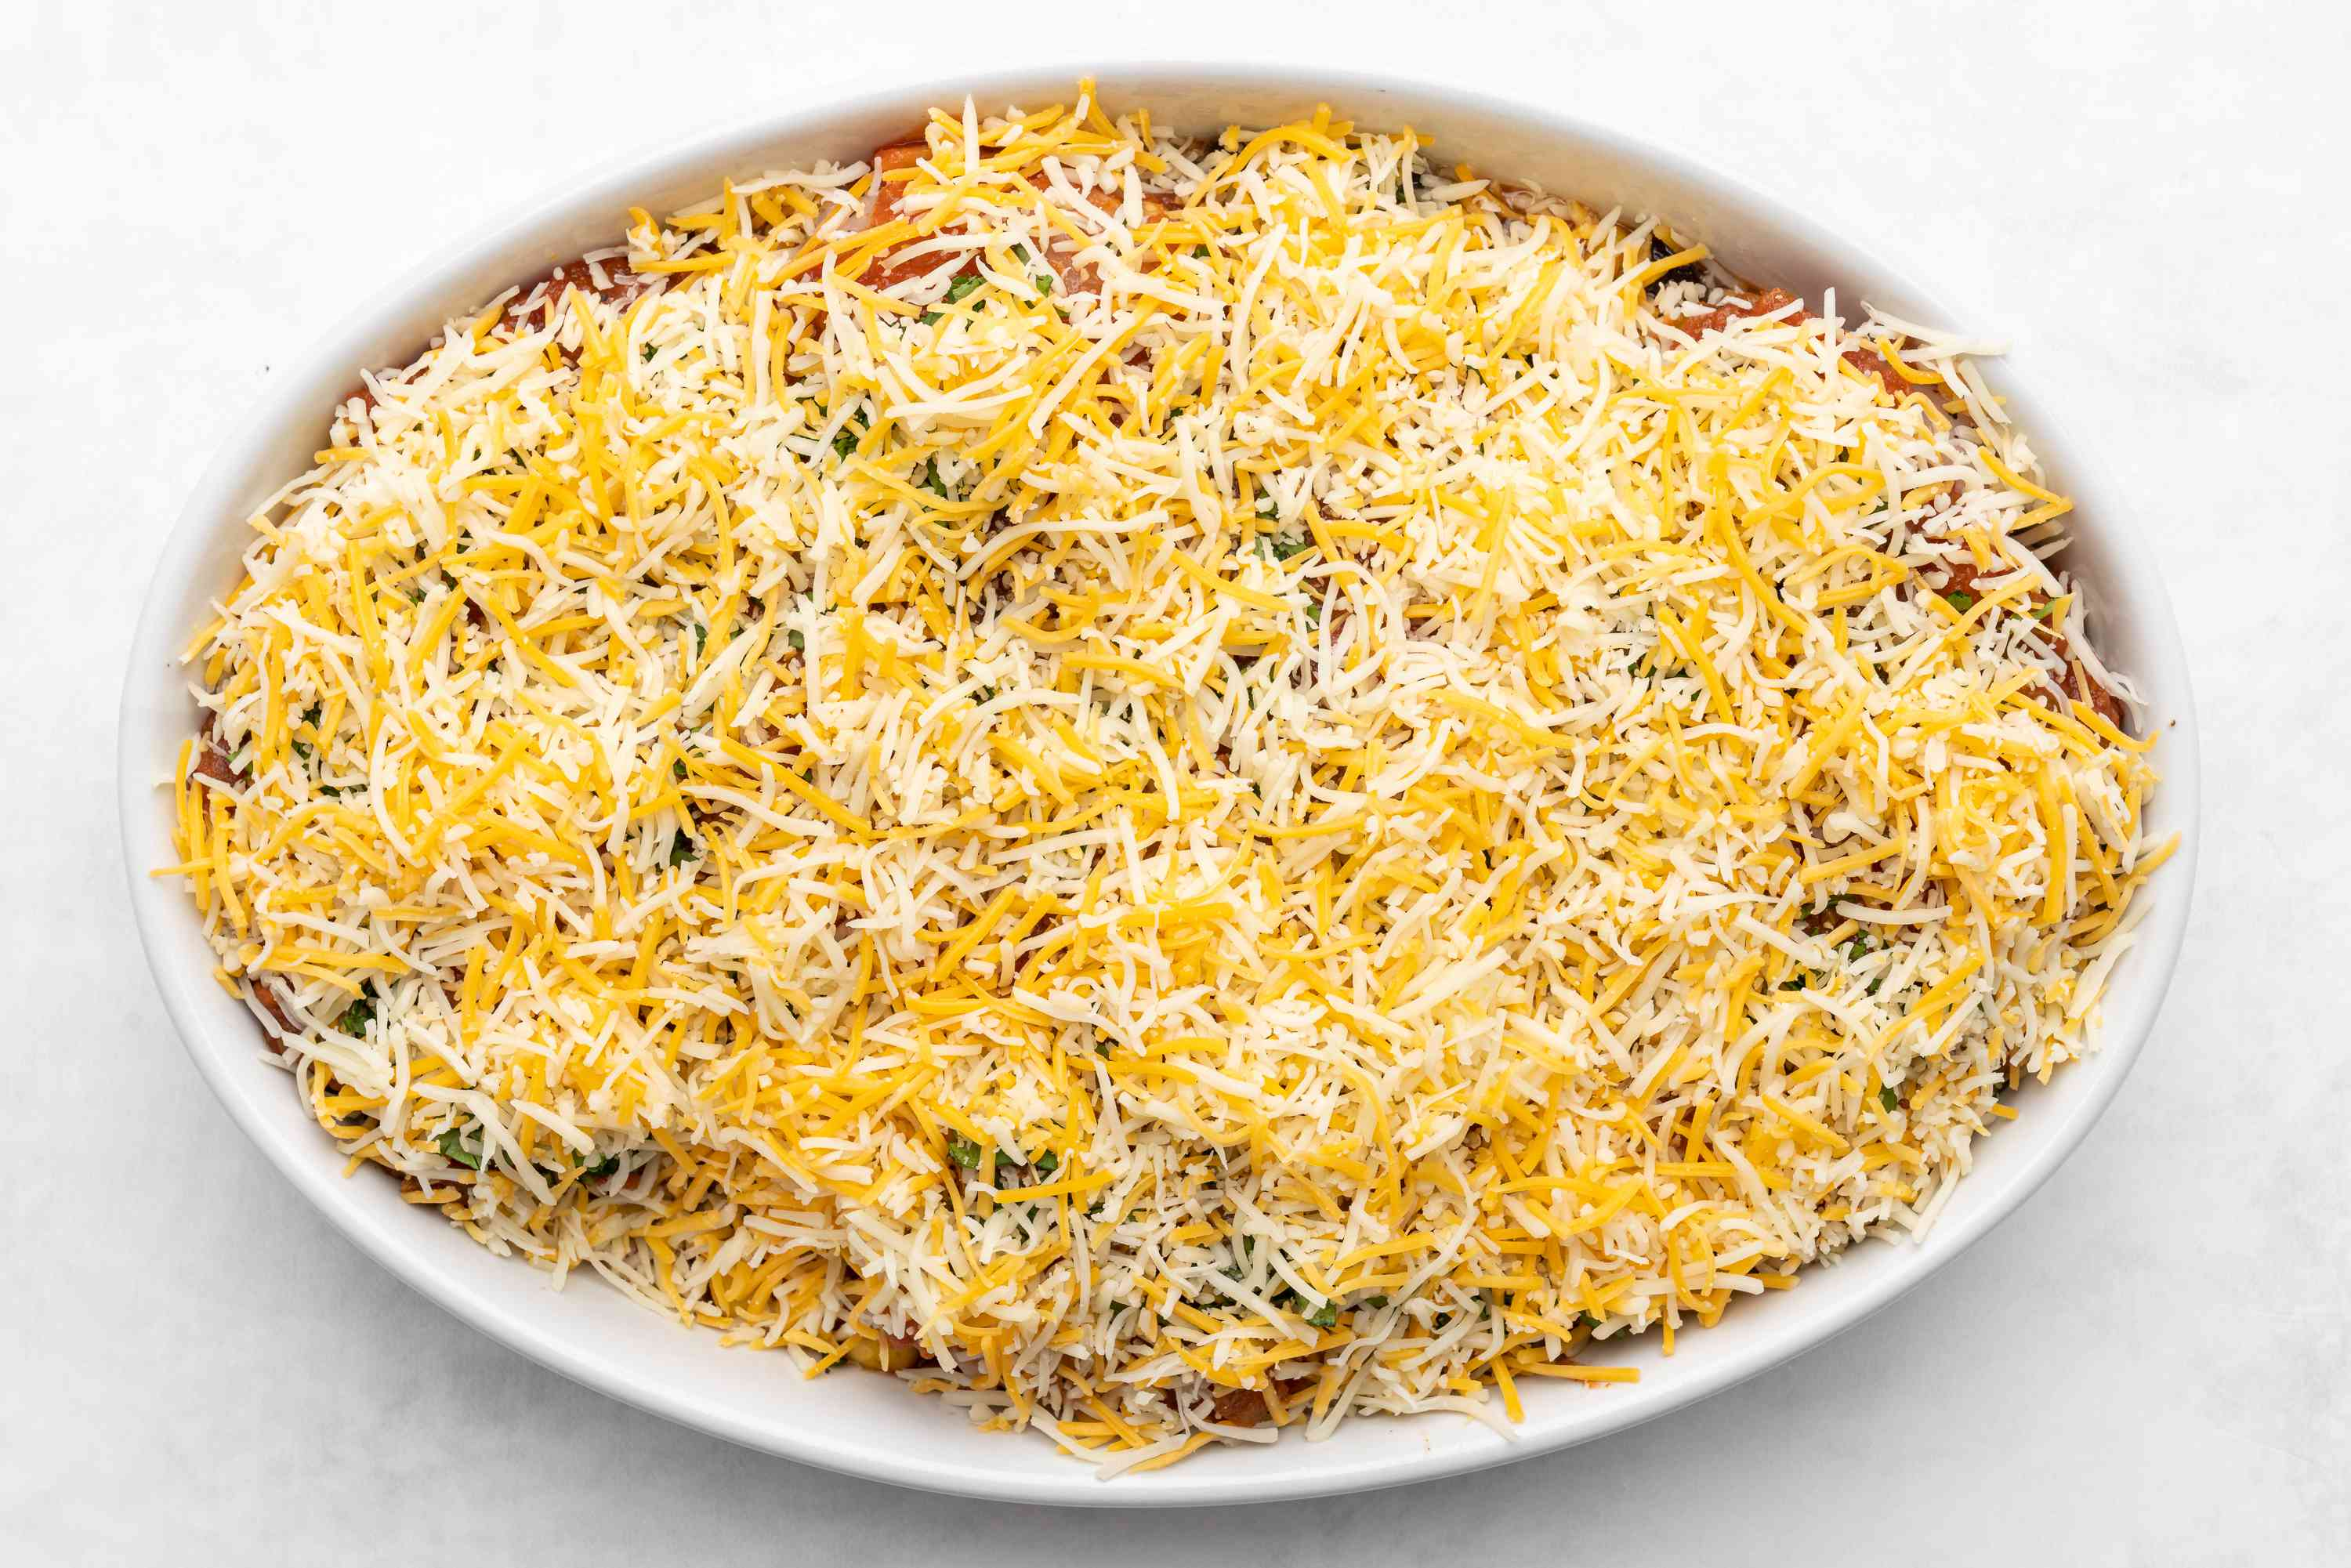 Arrange chicken over bean and corn mixture, add cheese on top